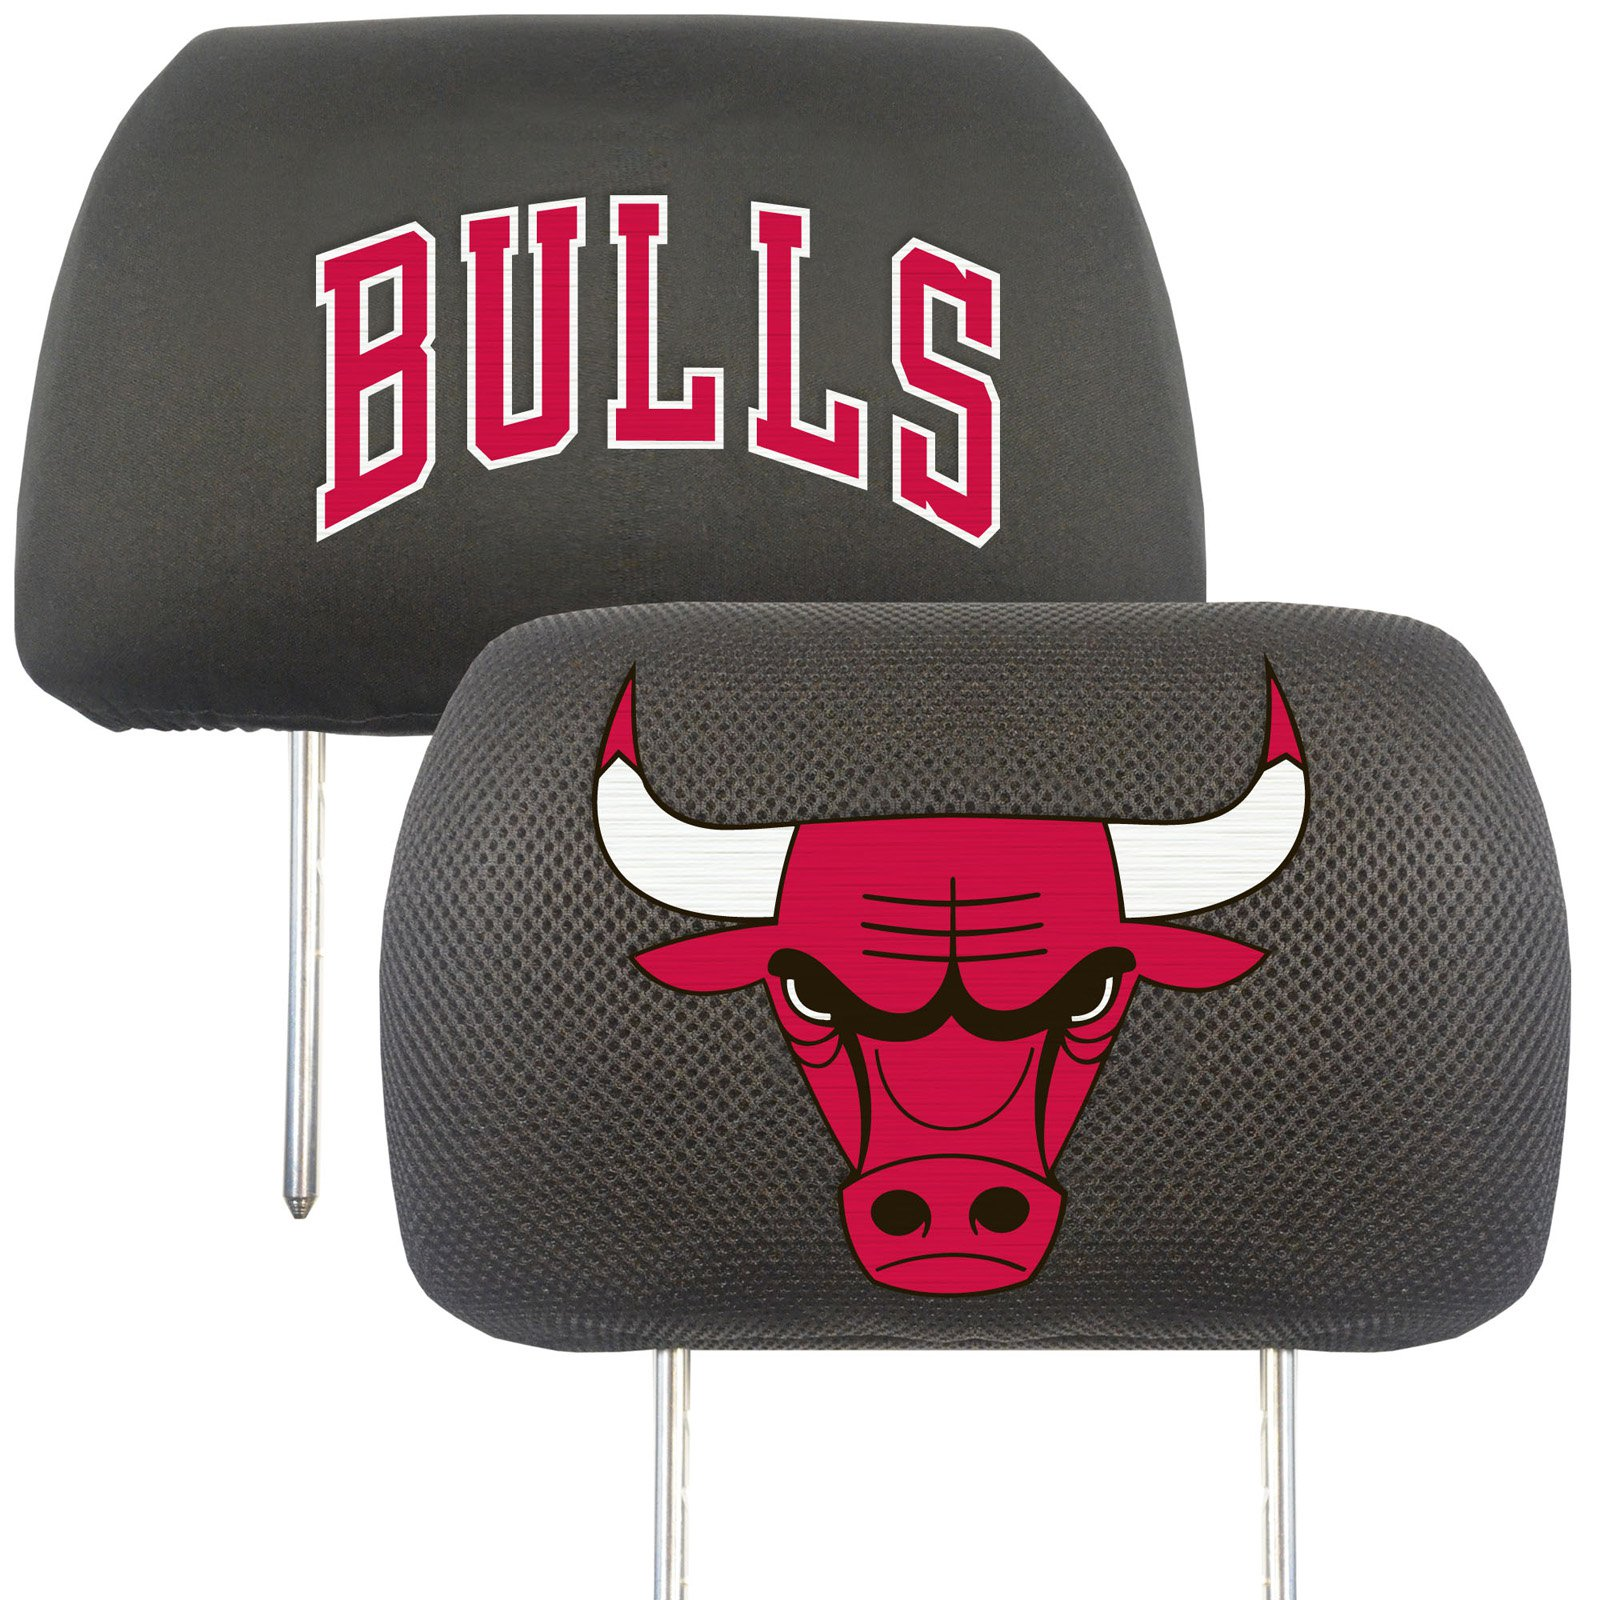 NBA Chicago Bulls Headrest Covers